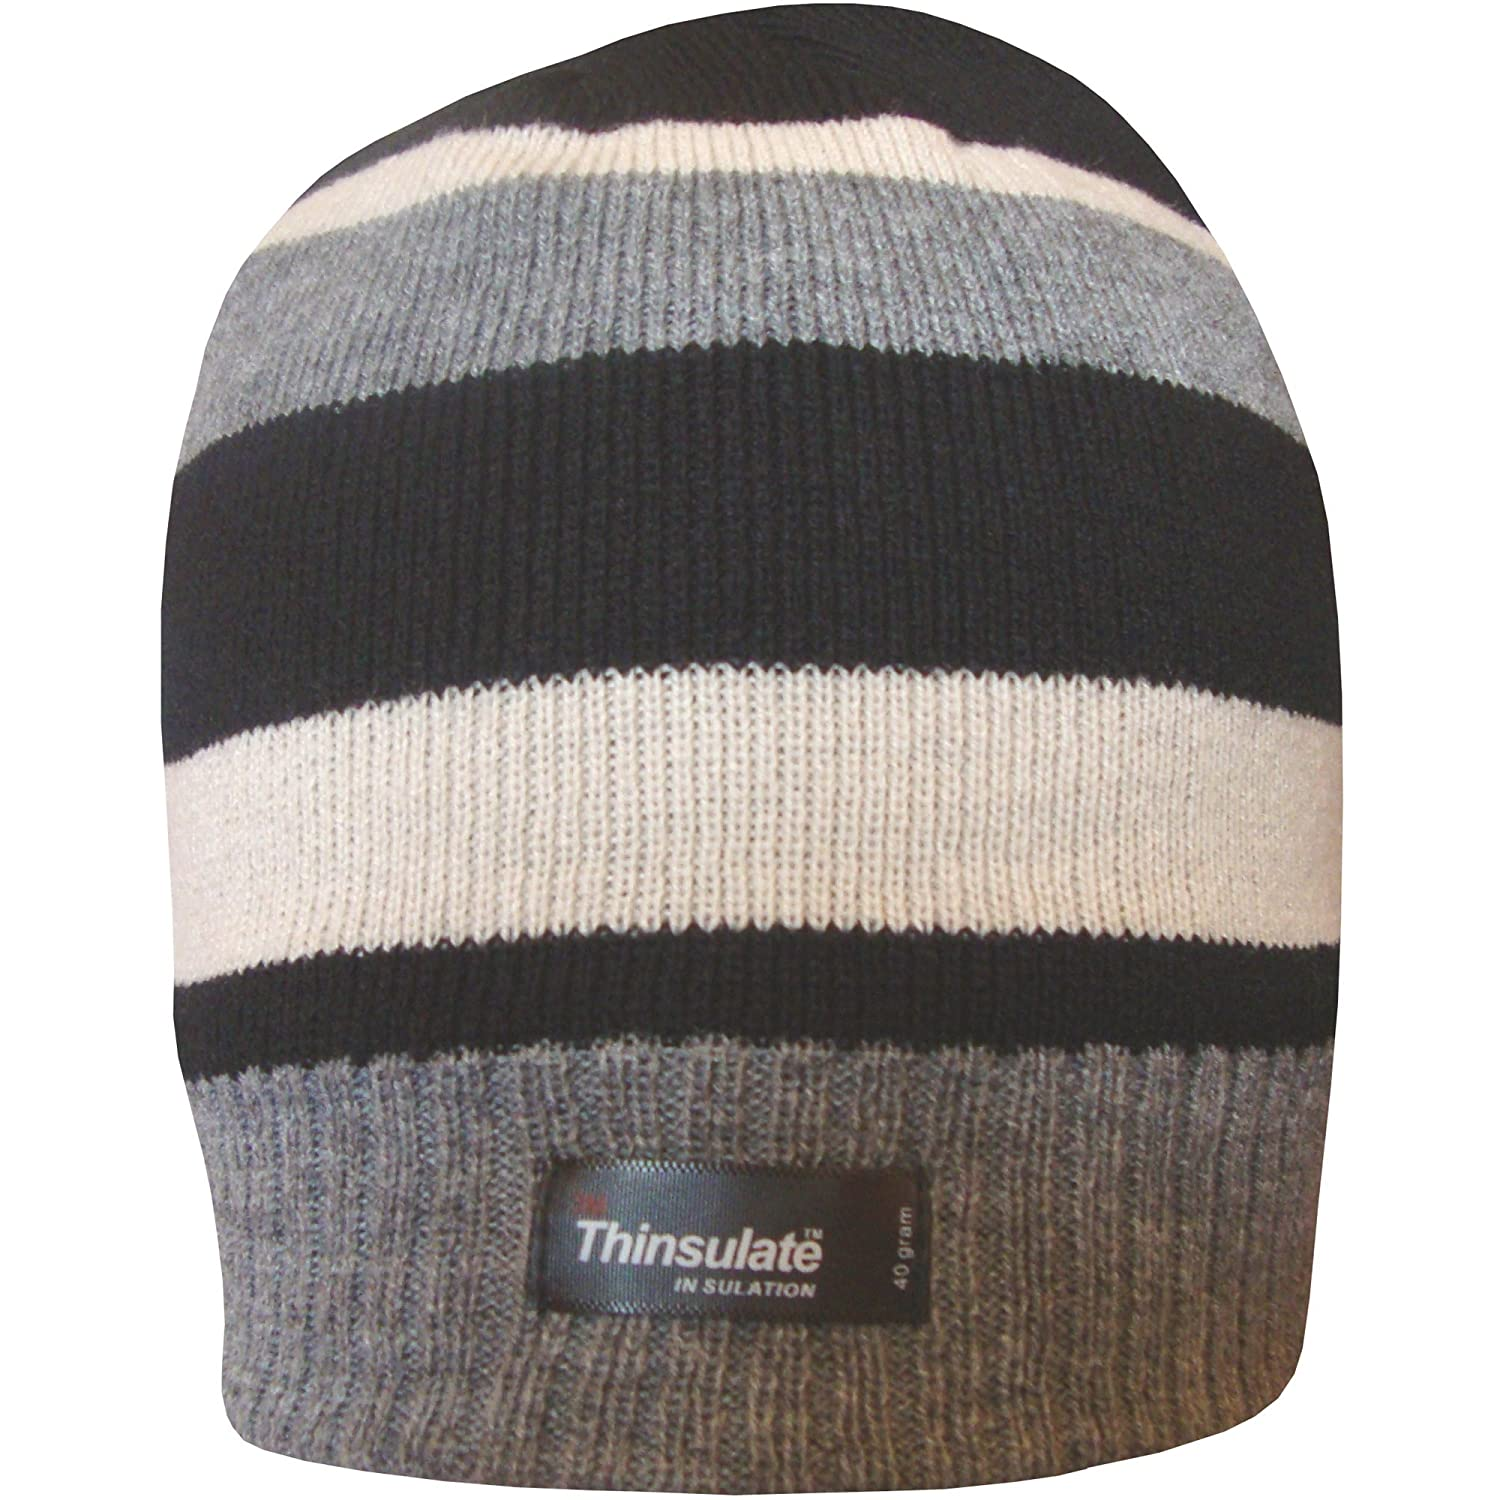 Boys Striped Design Thermal Knit Fleece Lined Thinsulate Winter Beanie Hat BoysBEANIEStripesAIRF